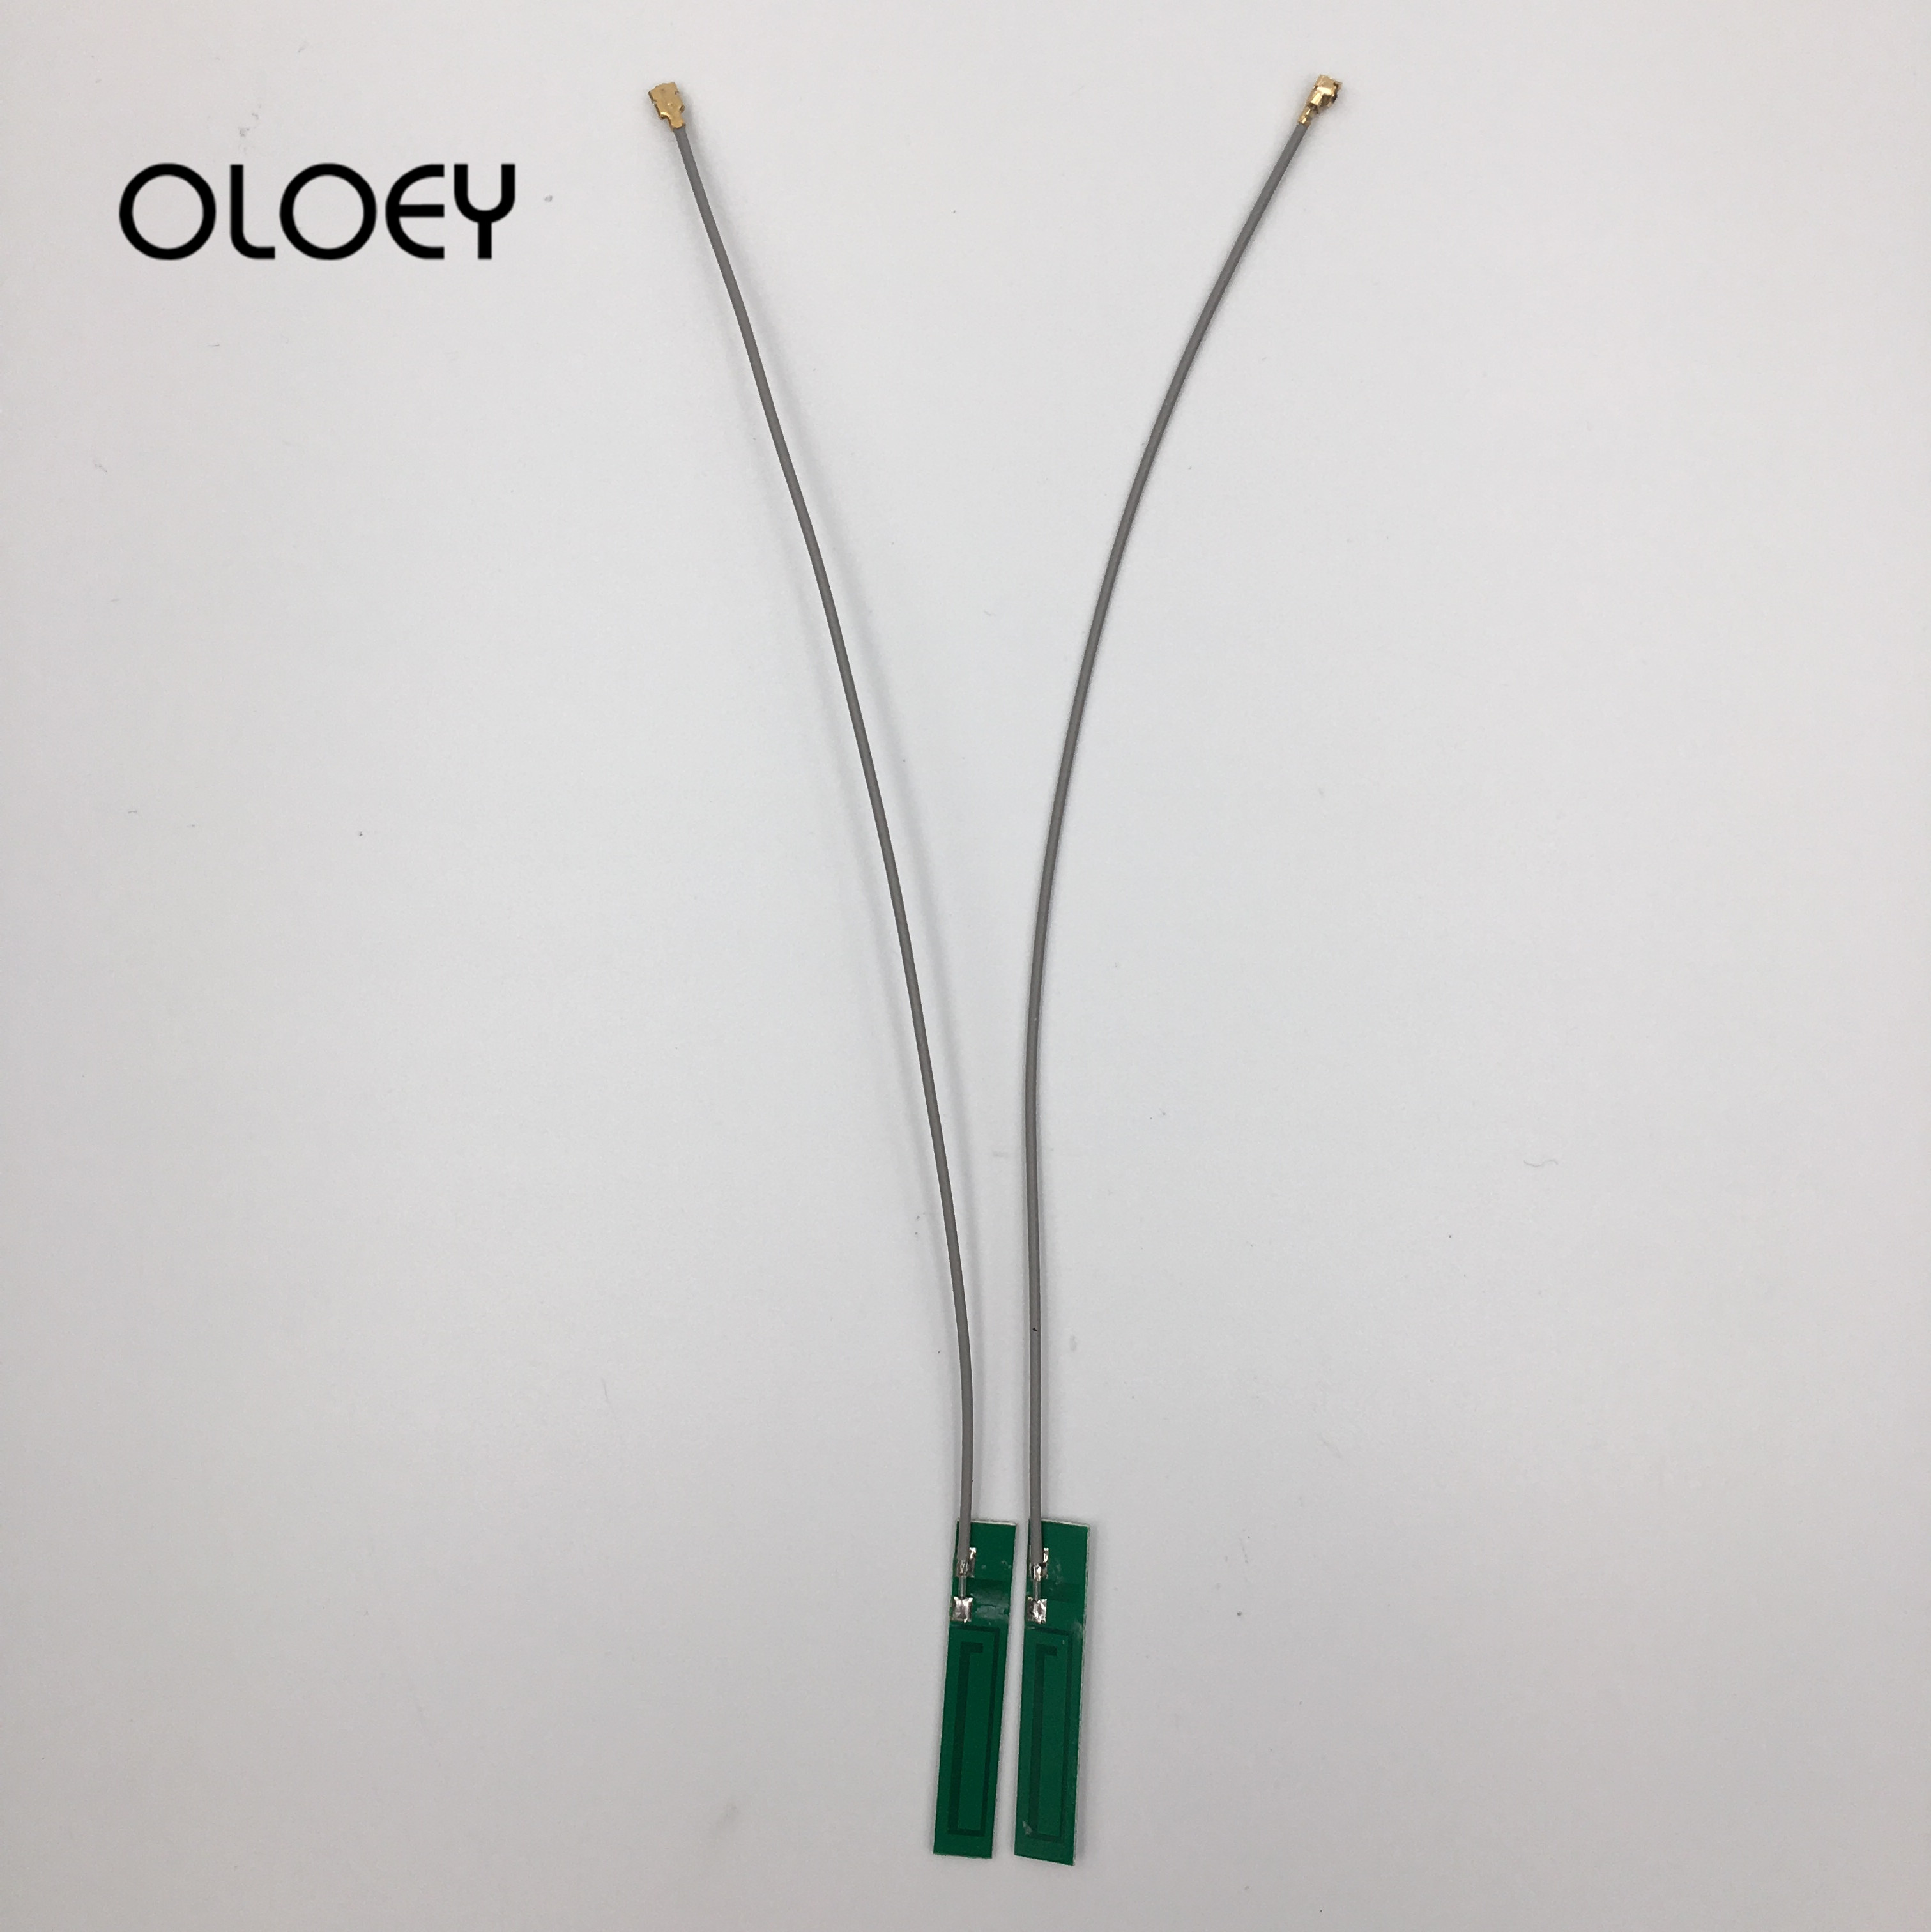 GPS Antenna, WCDMA Antenna, LTE Antenna, PCB Antenna, With 3M Glue (for Fixing), Cable Length 15CM